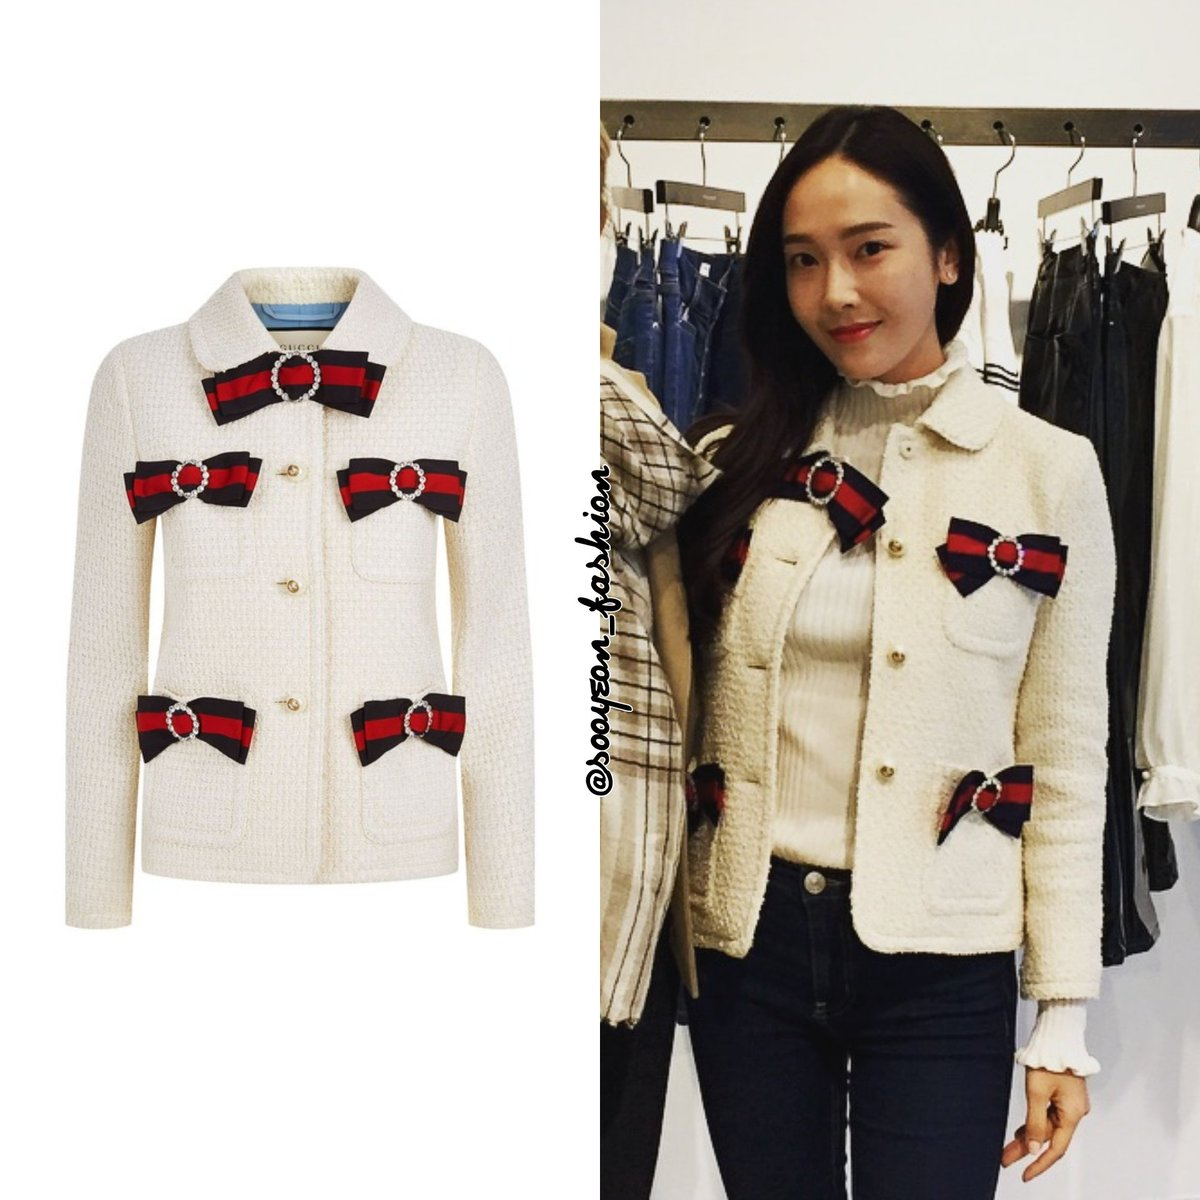 597ce5acb ... https://www.gucci.com/uk/en_gb/pr/women/womens-ready-to-wear/womens- coats-jackets/womens-jackets/tweed-jacket-with-web-bows-p-476264ZIM189103?position=  ...